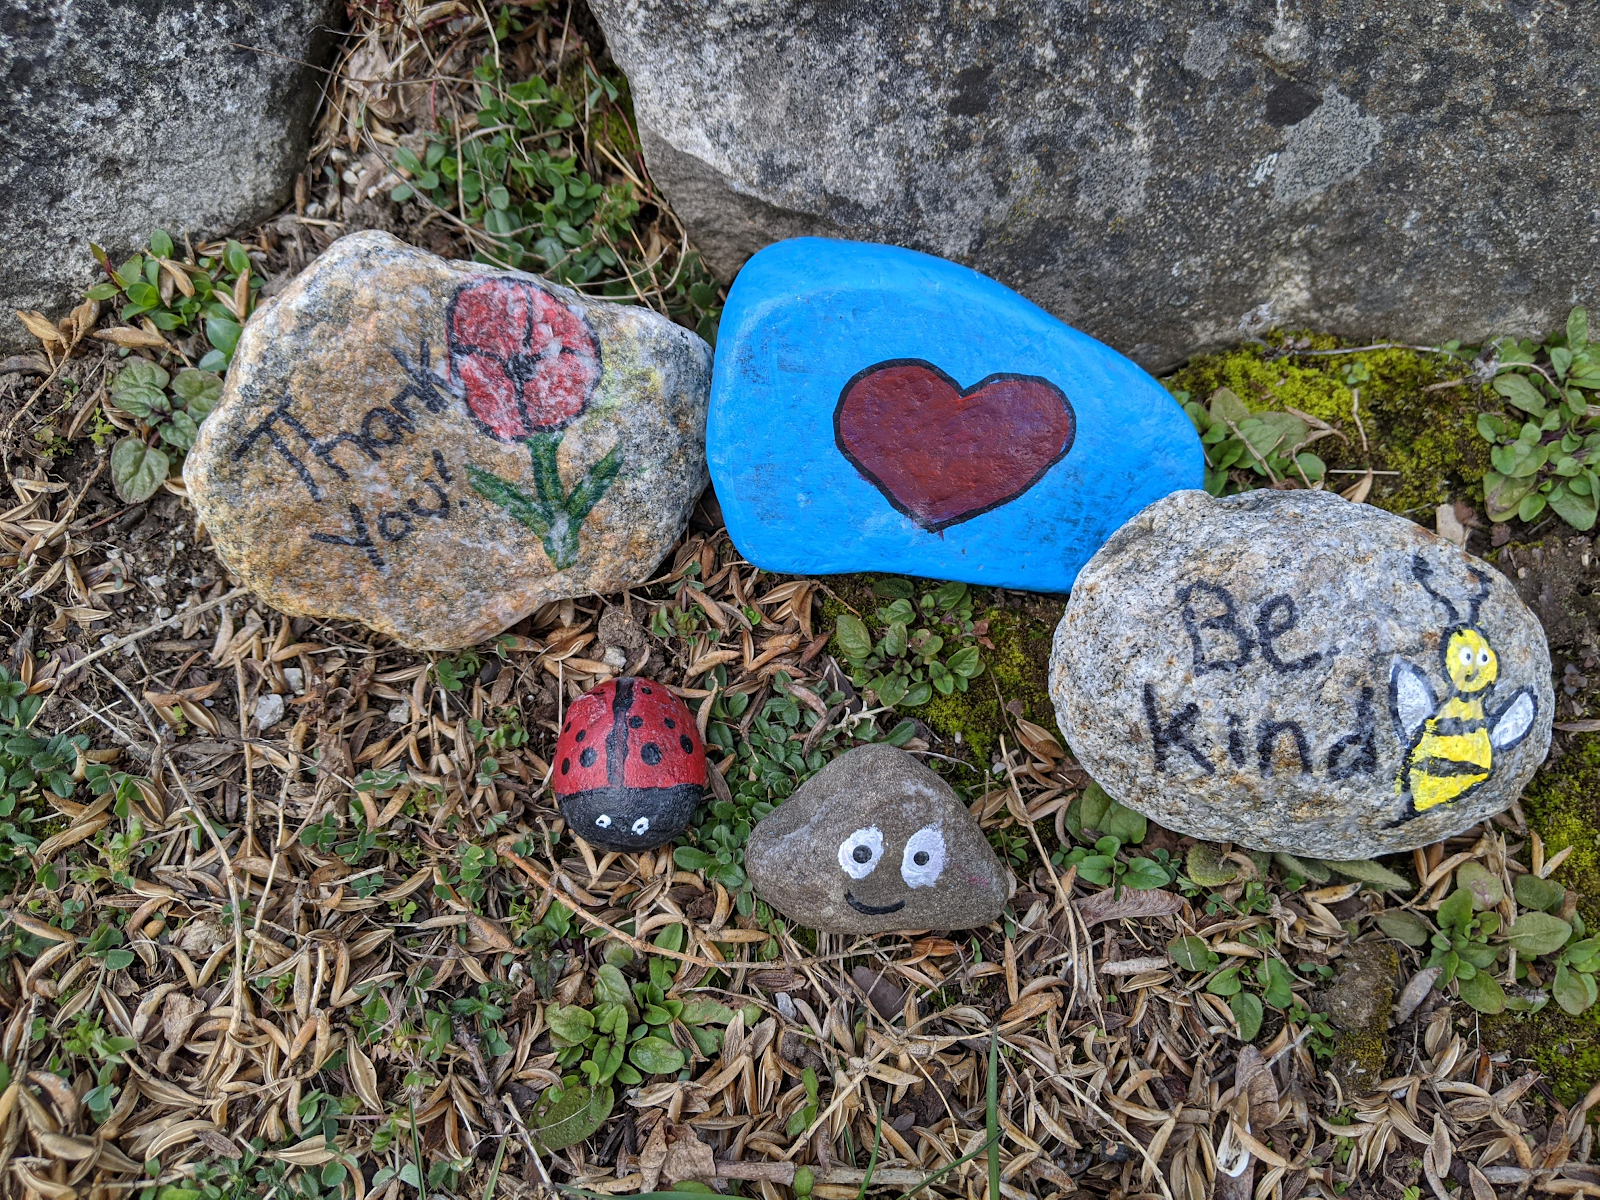 This is an image of several rocks that are painted. One says 'be kind'. Another is blue with a red heart painted on it.